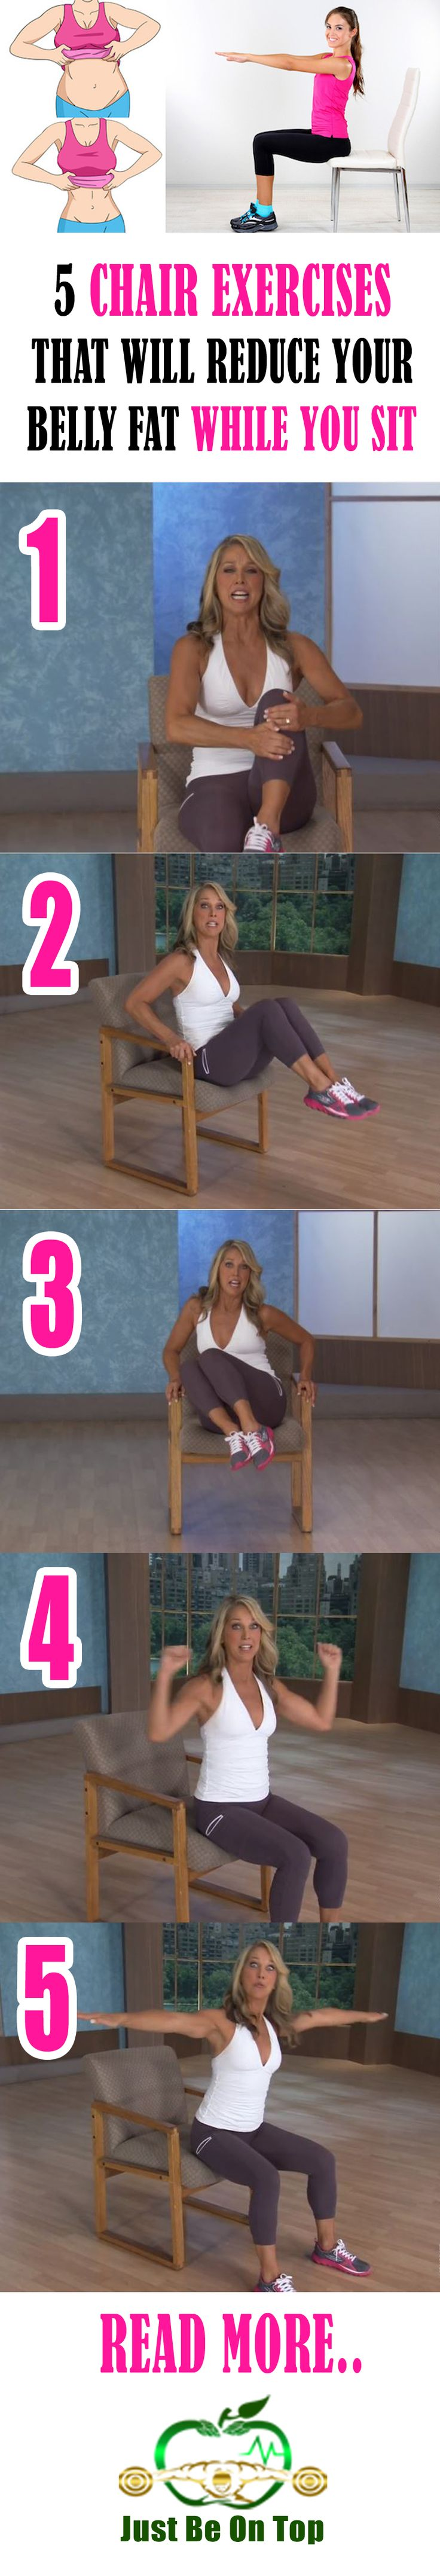 If you are one of those people that have sedentary work and do not have enough physical activities per day, then you might want to try to workout during sitting. All you need to do is to perform chair exercises that will help you to stay fit and good looking even you are sitting most of the time.